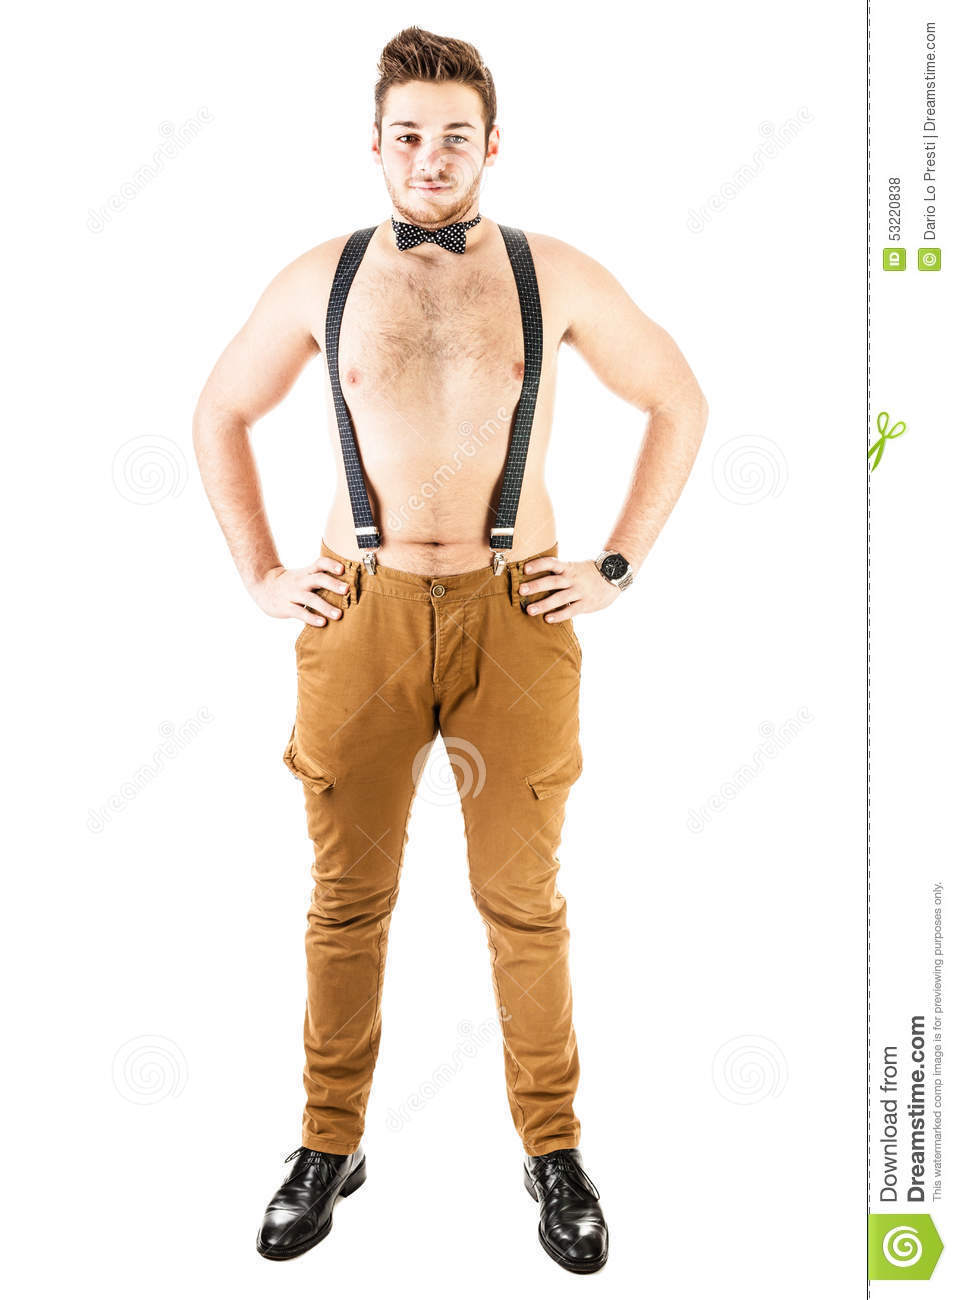 No Shirt And Ready For Party Stock Photo Image Of Character Male